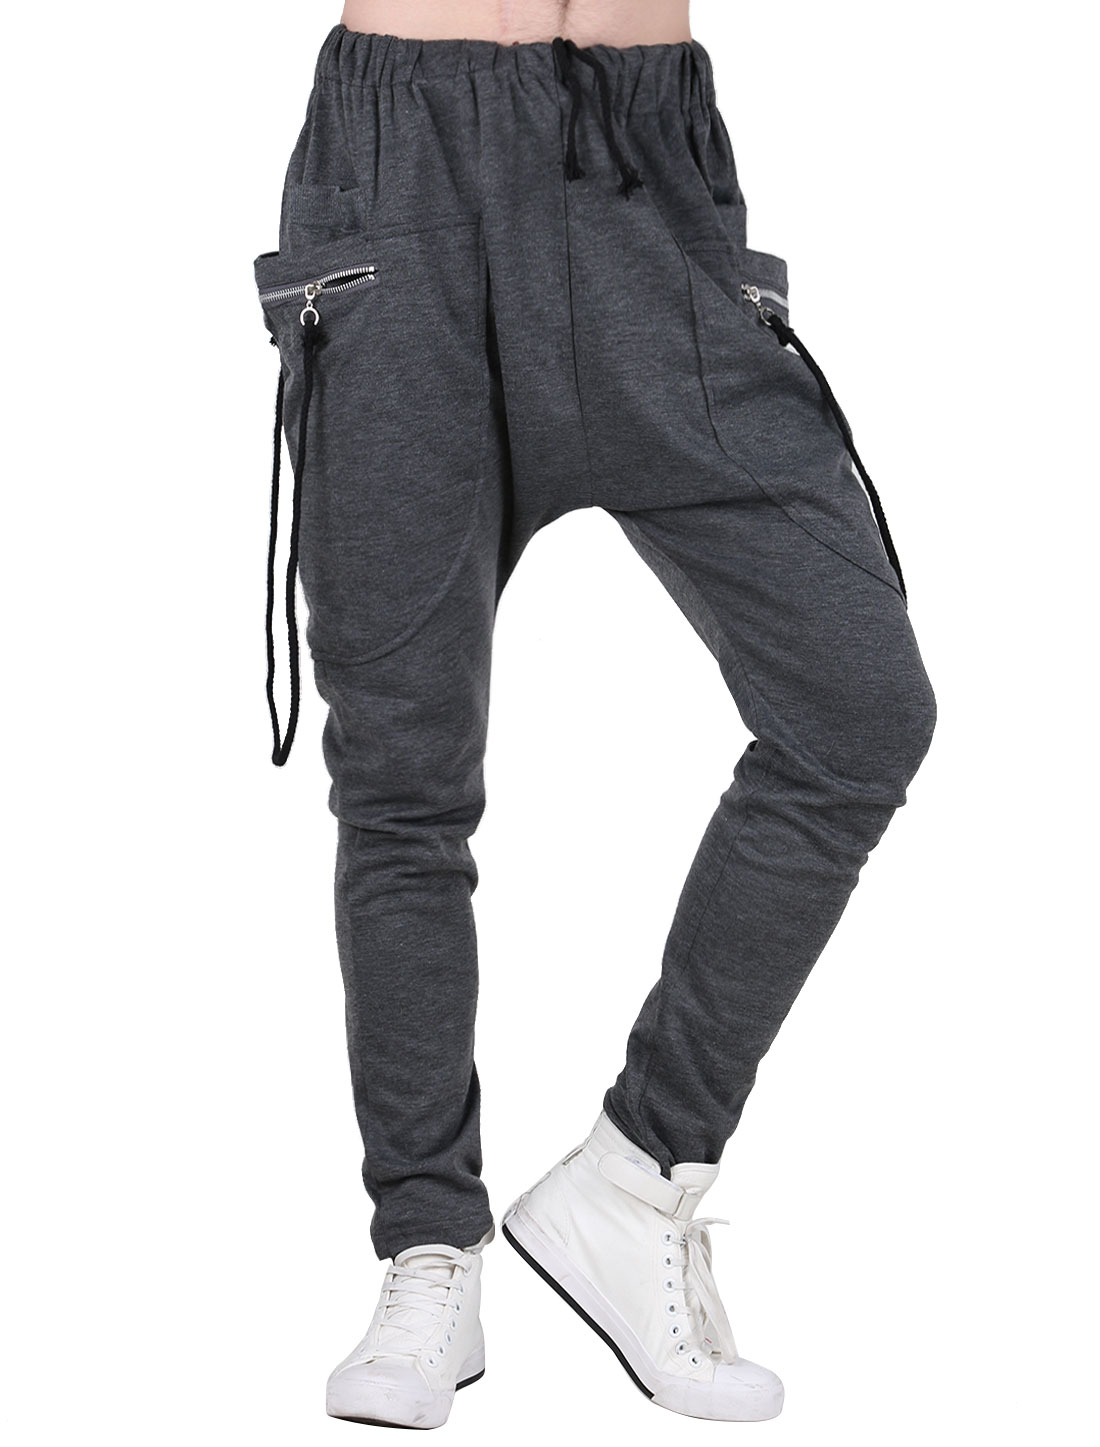 Cool Mens Casual Baggy Dance Long Trousers Harem Pants Dark Gray W32/34